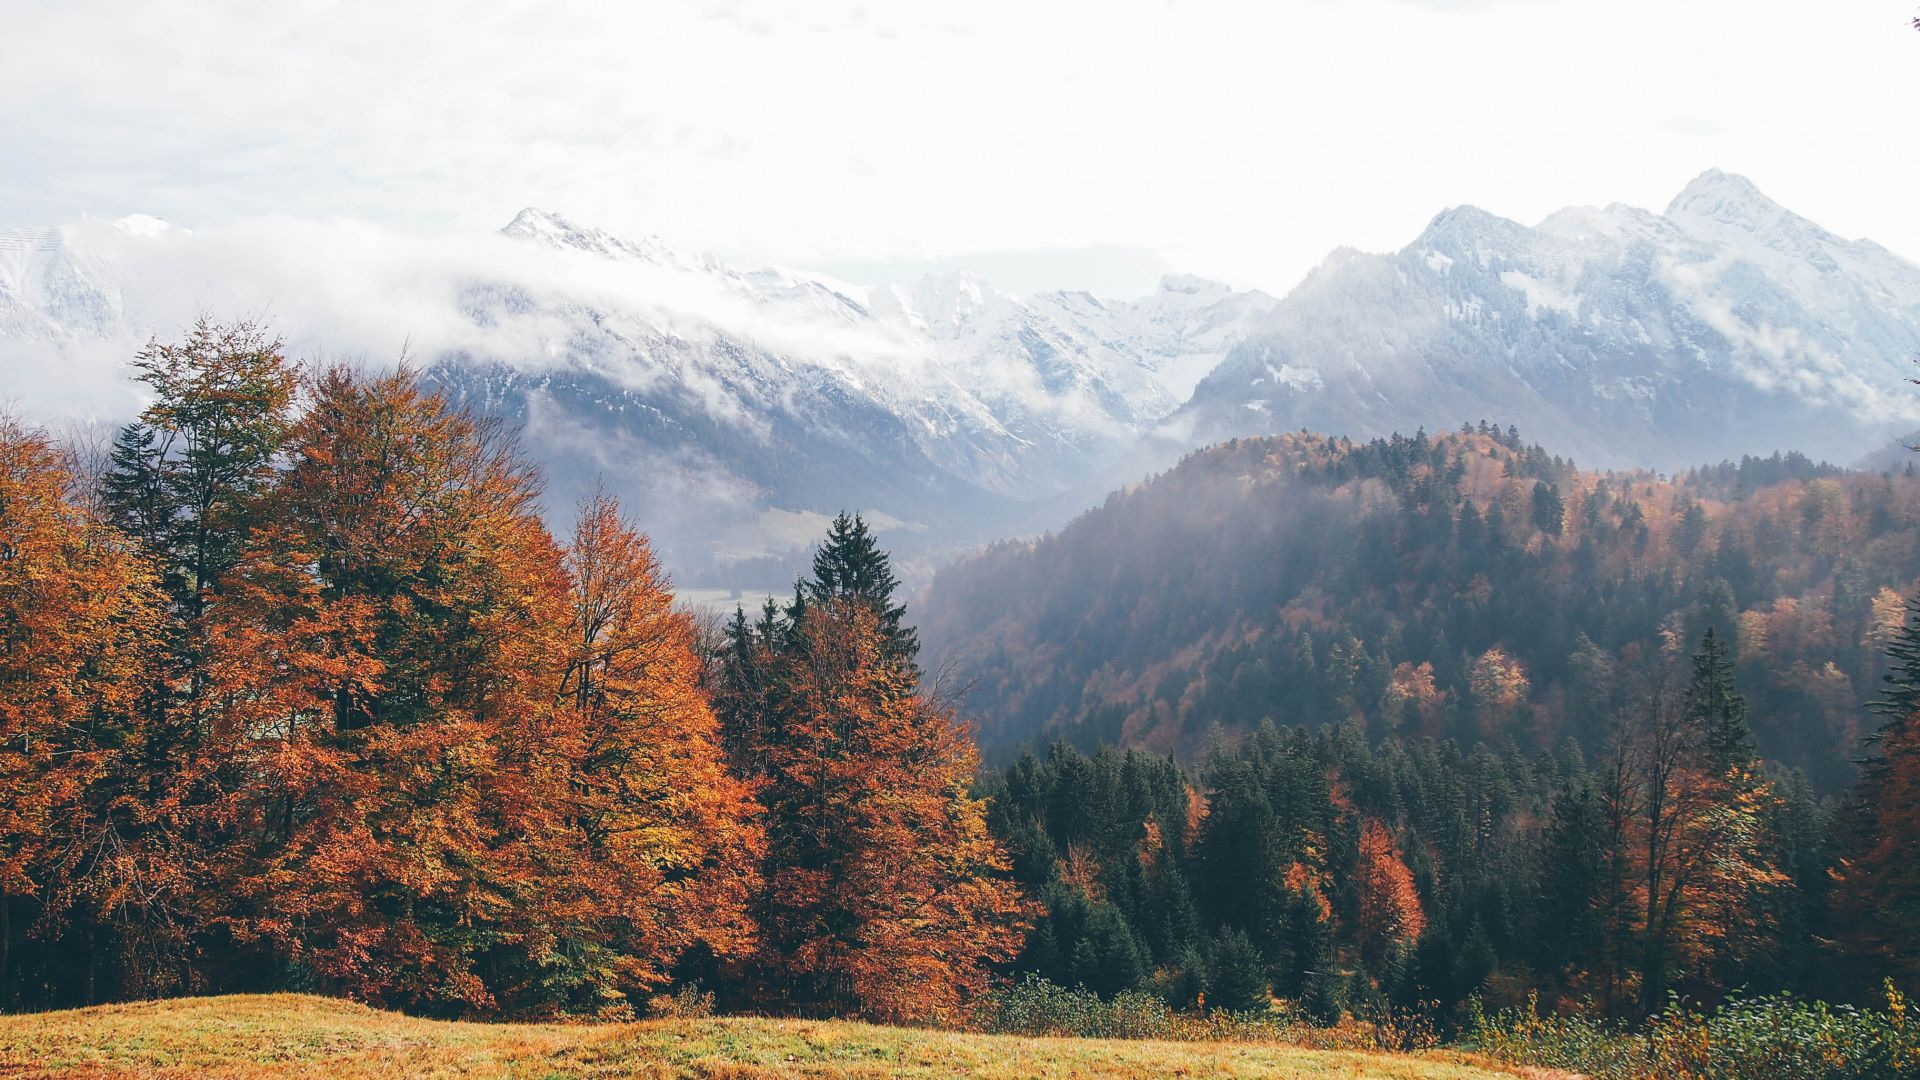 Oberstdorf, Germany, mountains, autumn, forest, 4k (horizontal)